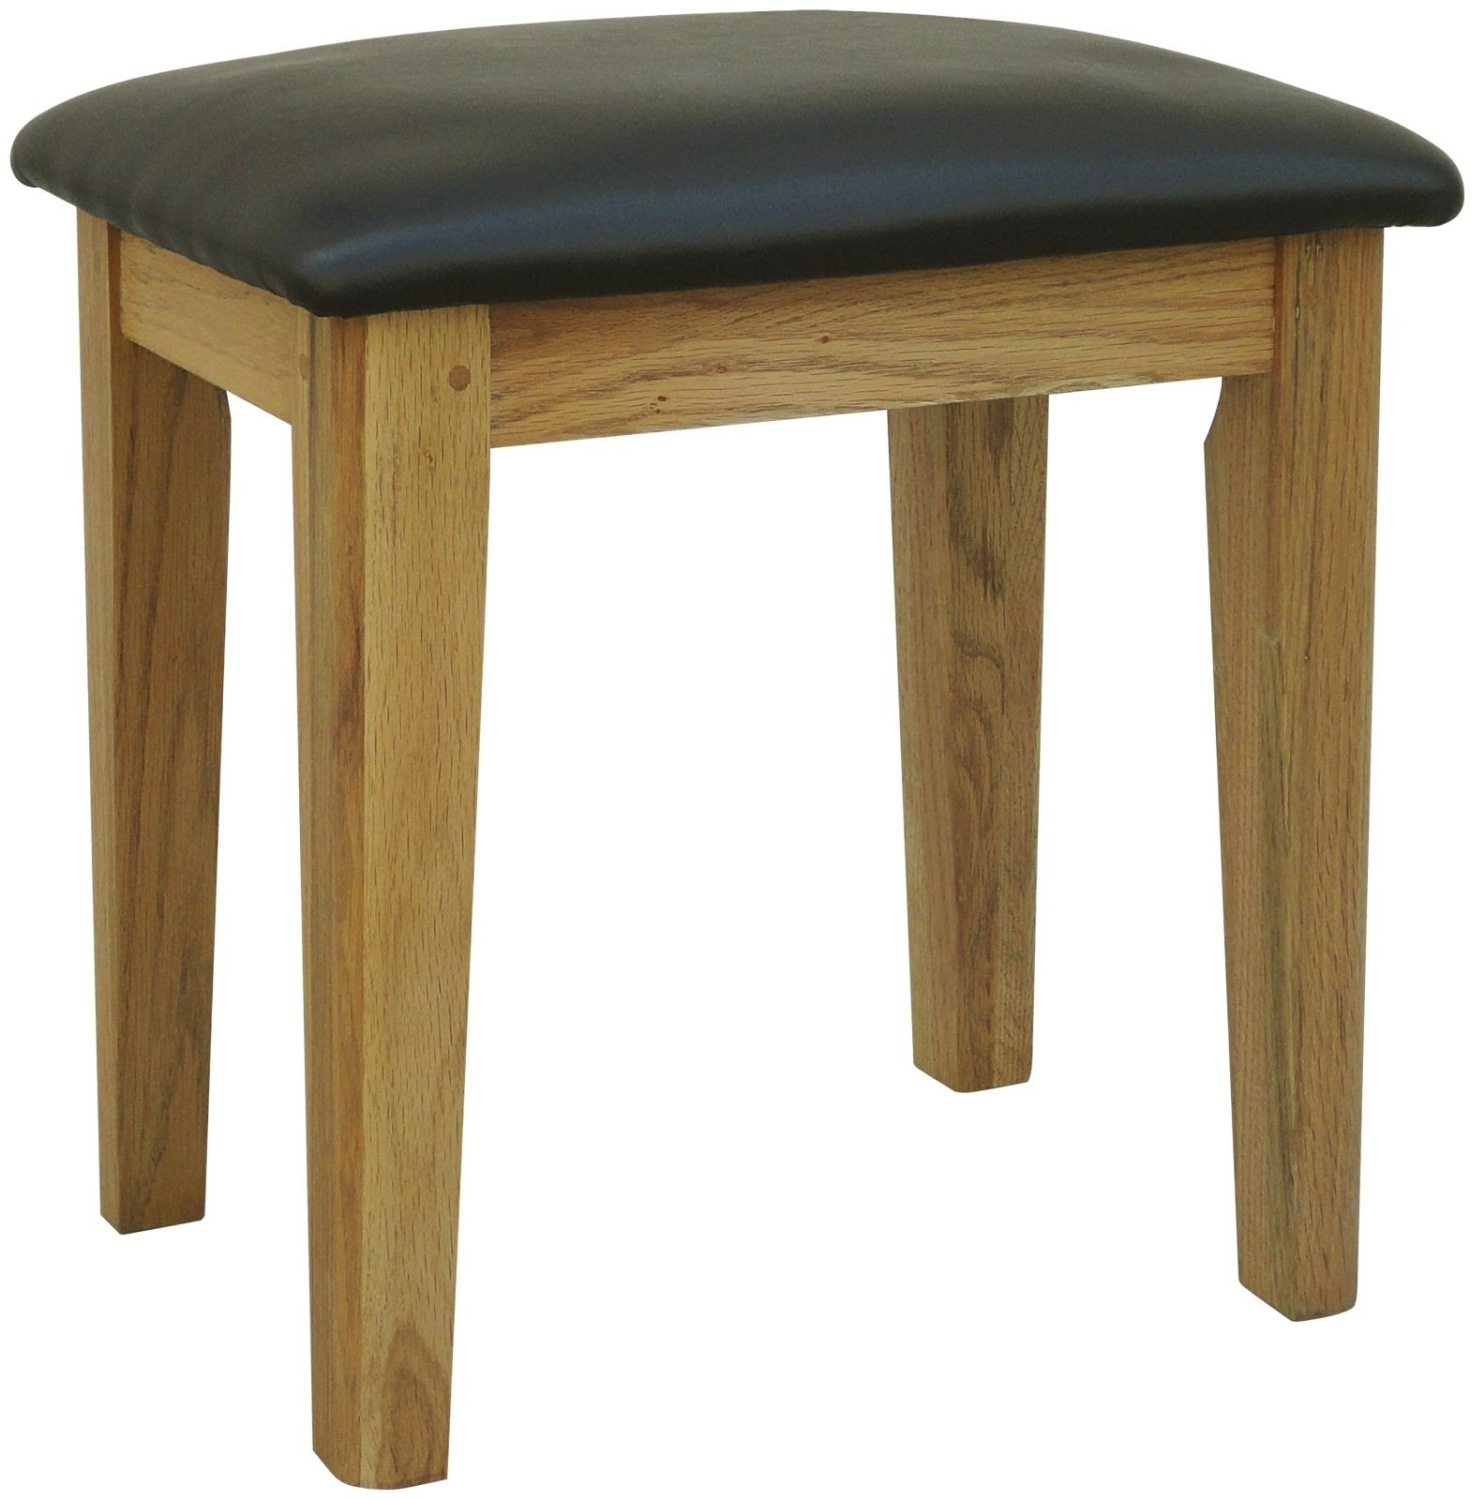 Linden solid oak bedroom furniture dressing table stool  eBay